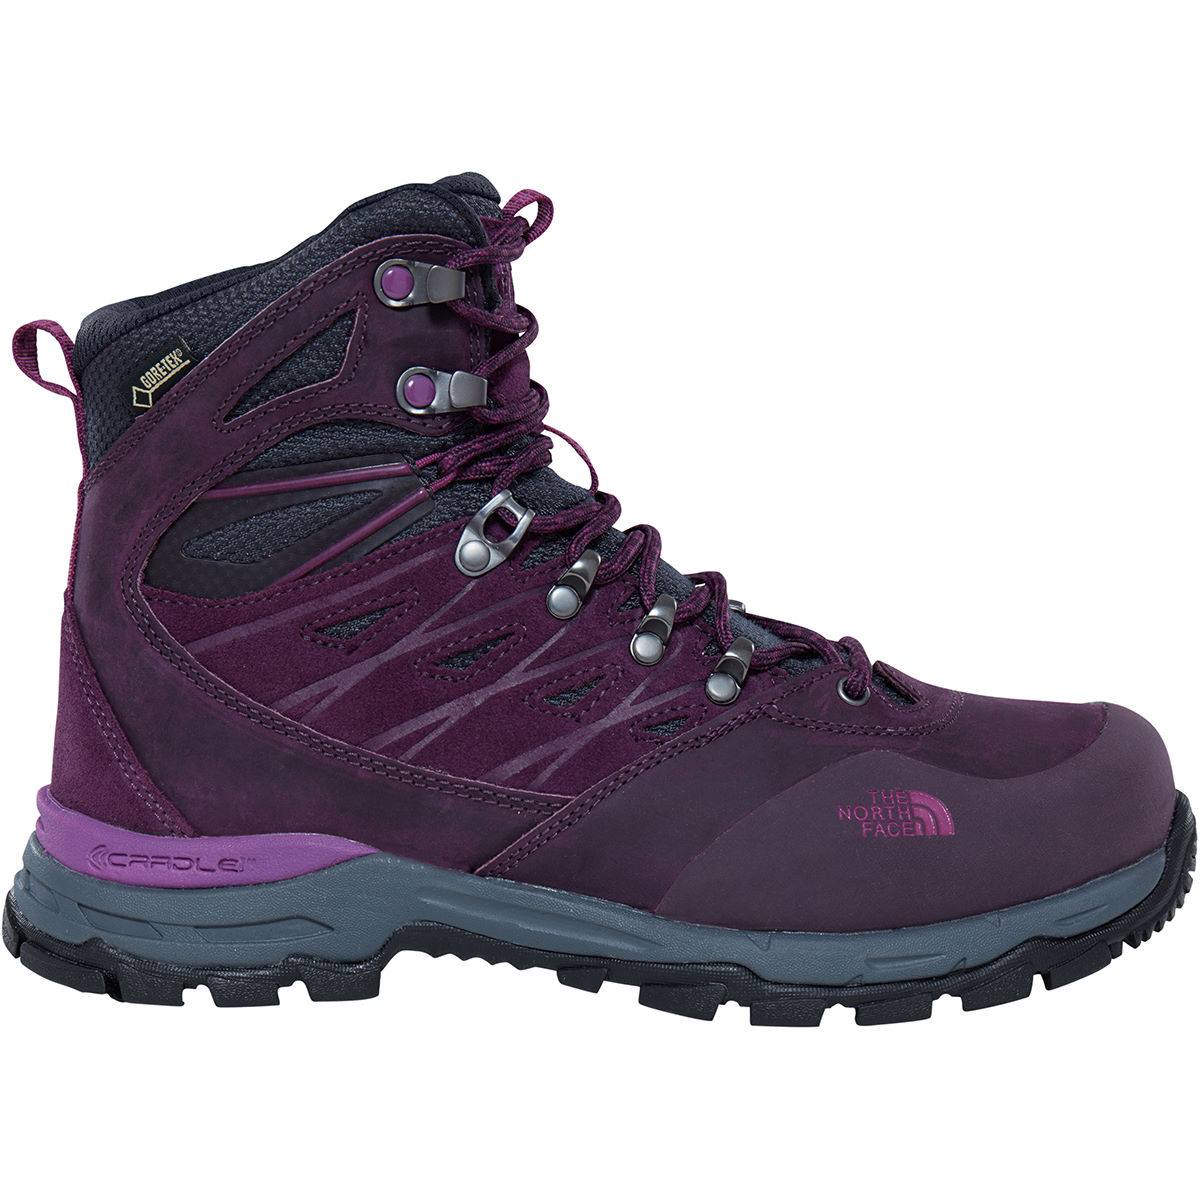 Chaussures Femme The North Face Hedgehog Trek Gore-Tex - 7